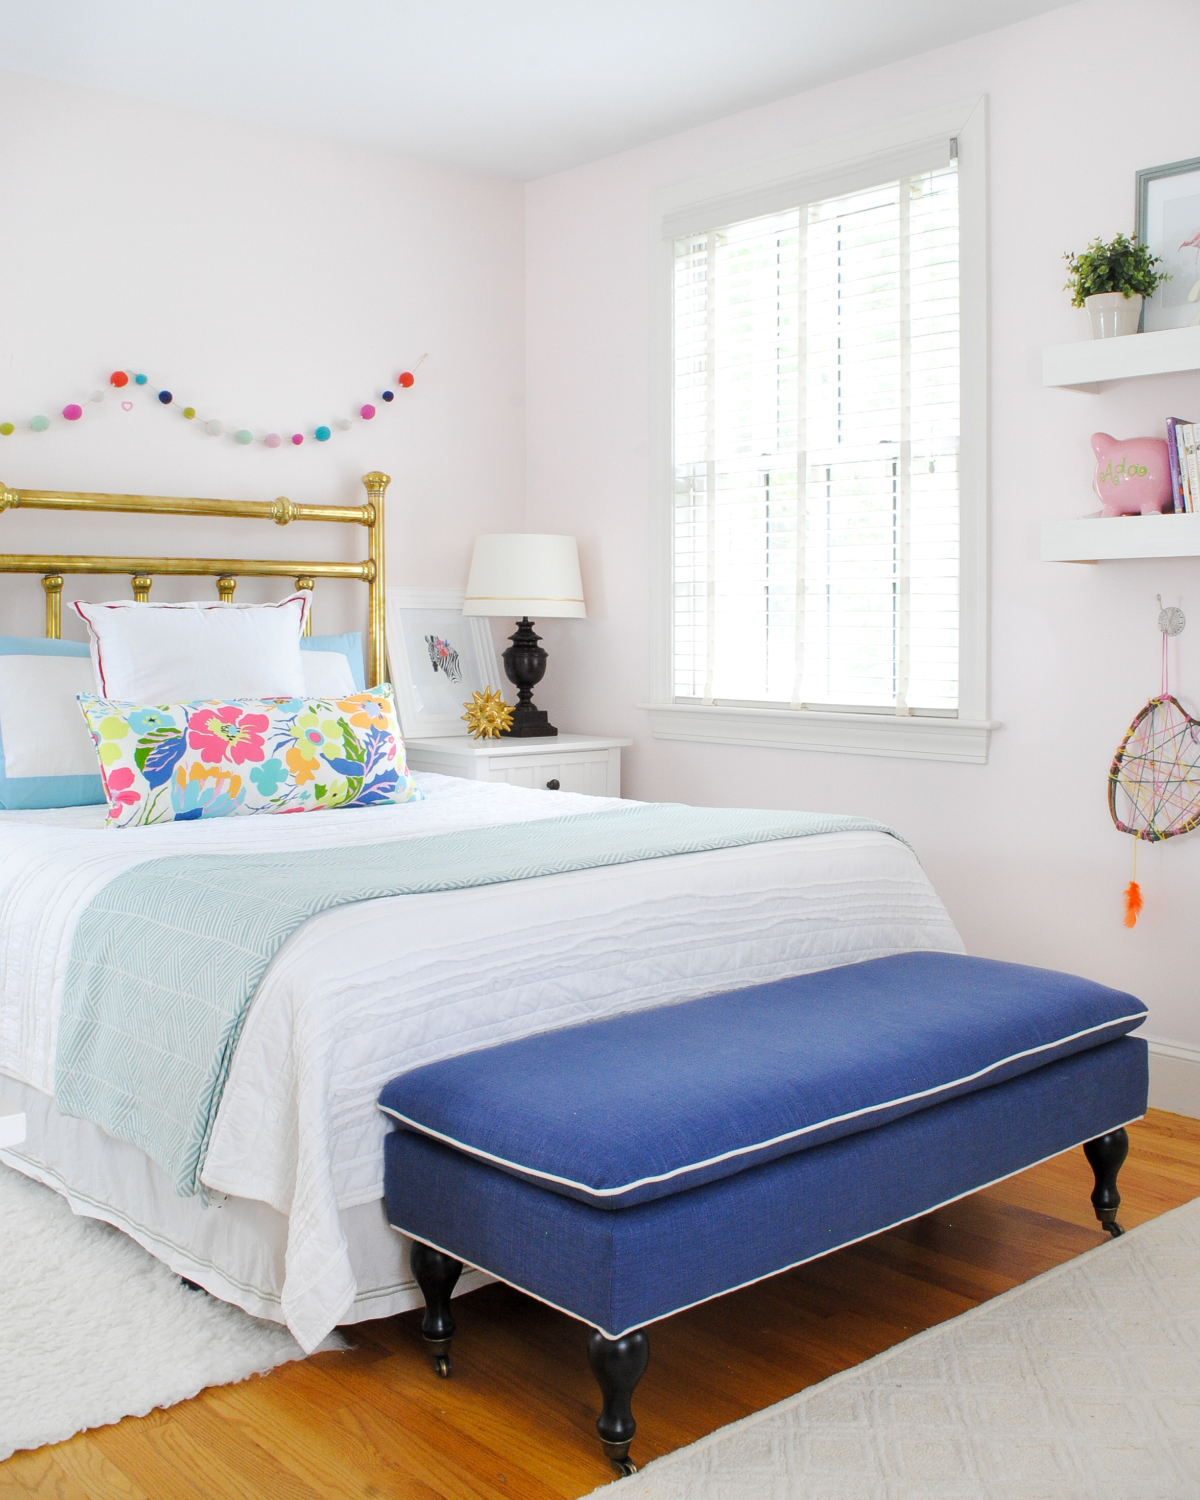 Big Girl Bedroom Update - New Mattress and Bedding - The ... on Beautiful Room For Girls  id=86478